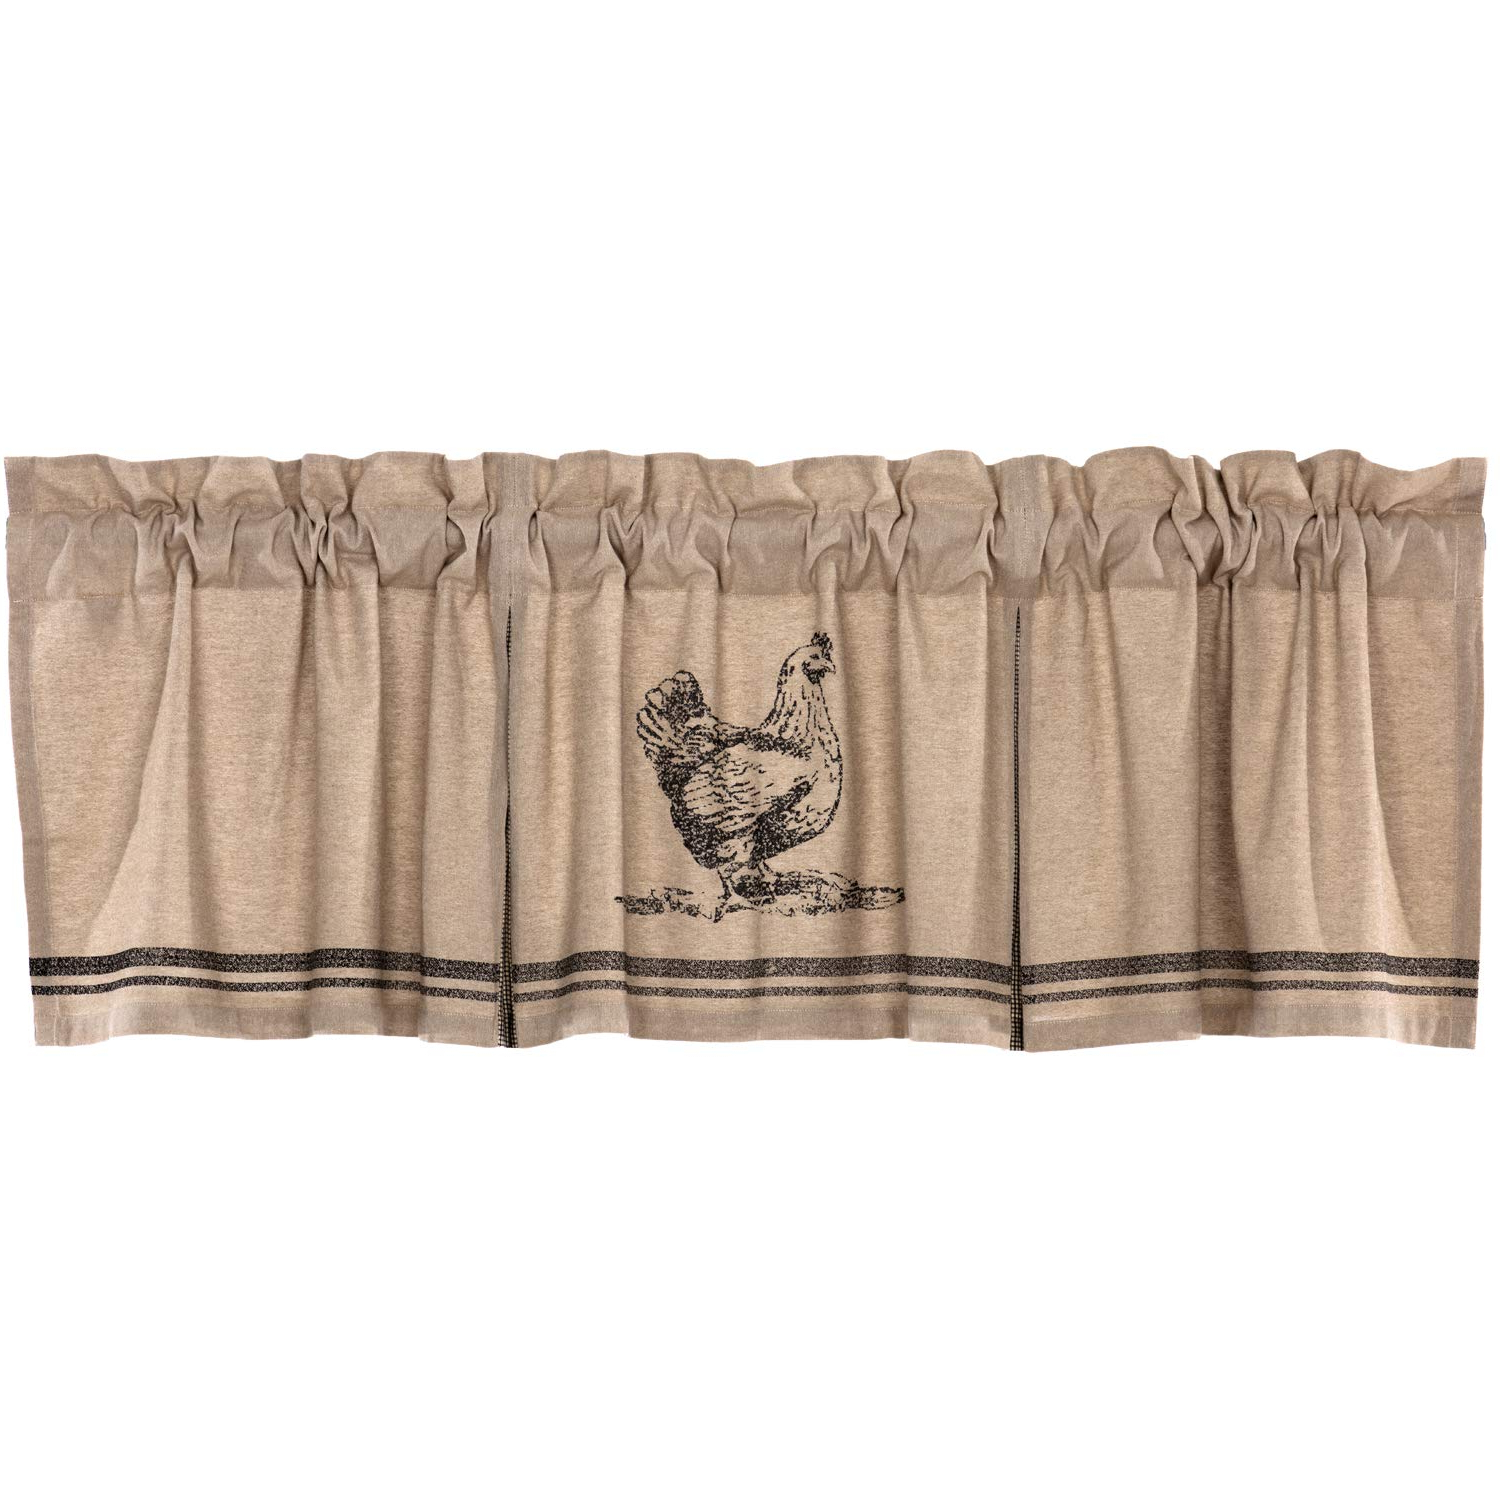 Vhc Brands Farmhouse Kitchen Curtains Sawyer Mill Chicken Rod Pocket Cotton Hanging Loops Stenciled Chambray Nature Print 20x72 Valance Charcoal Khaki With Favorite Rod Pocket Cotton Striped Lace Cotton Burlap Kitchen Curtains (View 12 of 20)